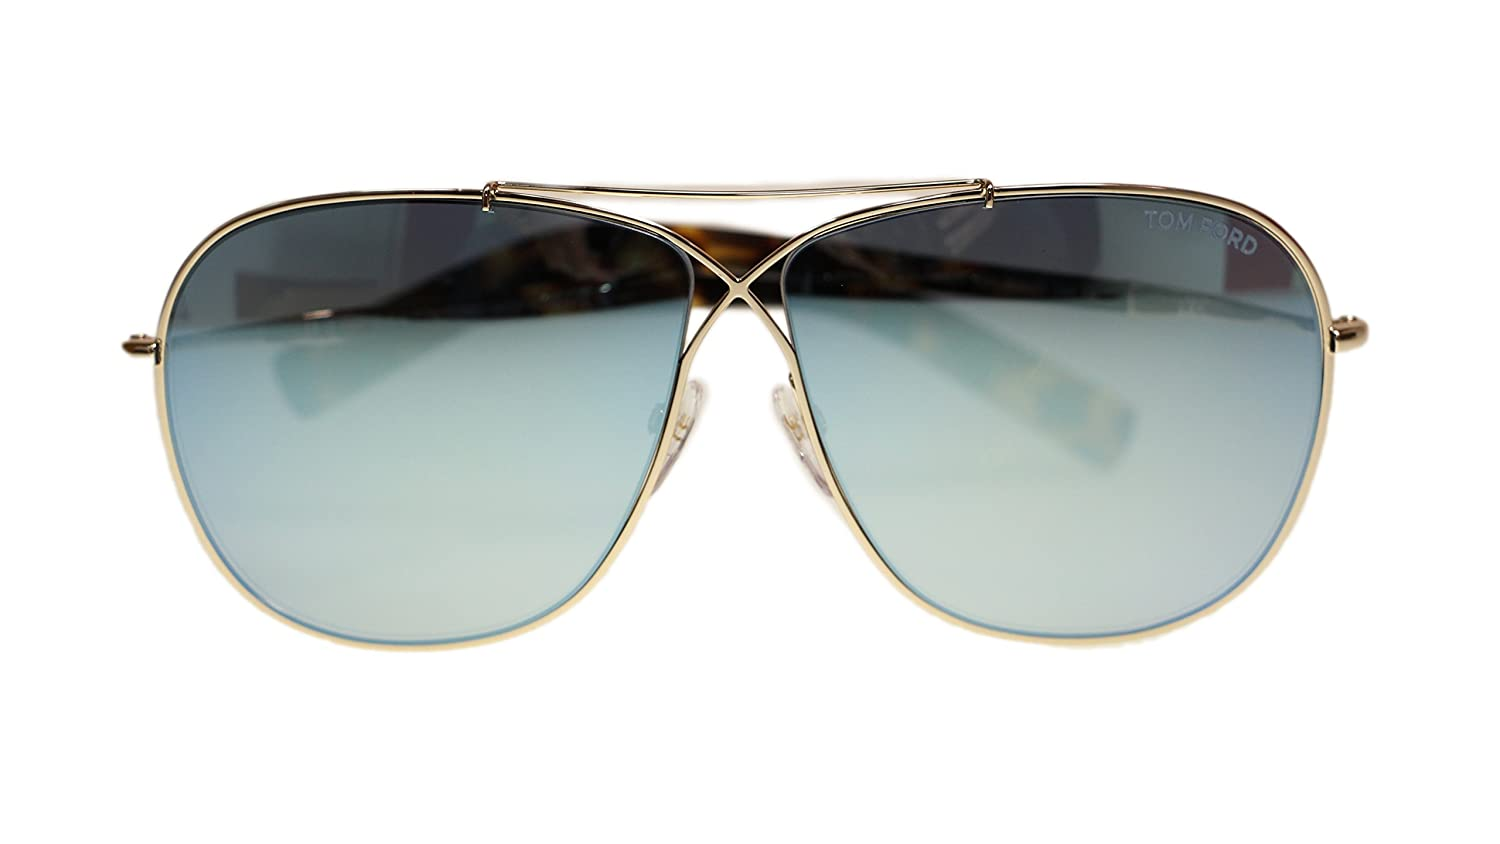 Tom Ford Metal Mens Sunglasses FT0393 28X Rose Gold Blue Lens 61mm Authentic